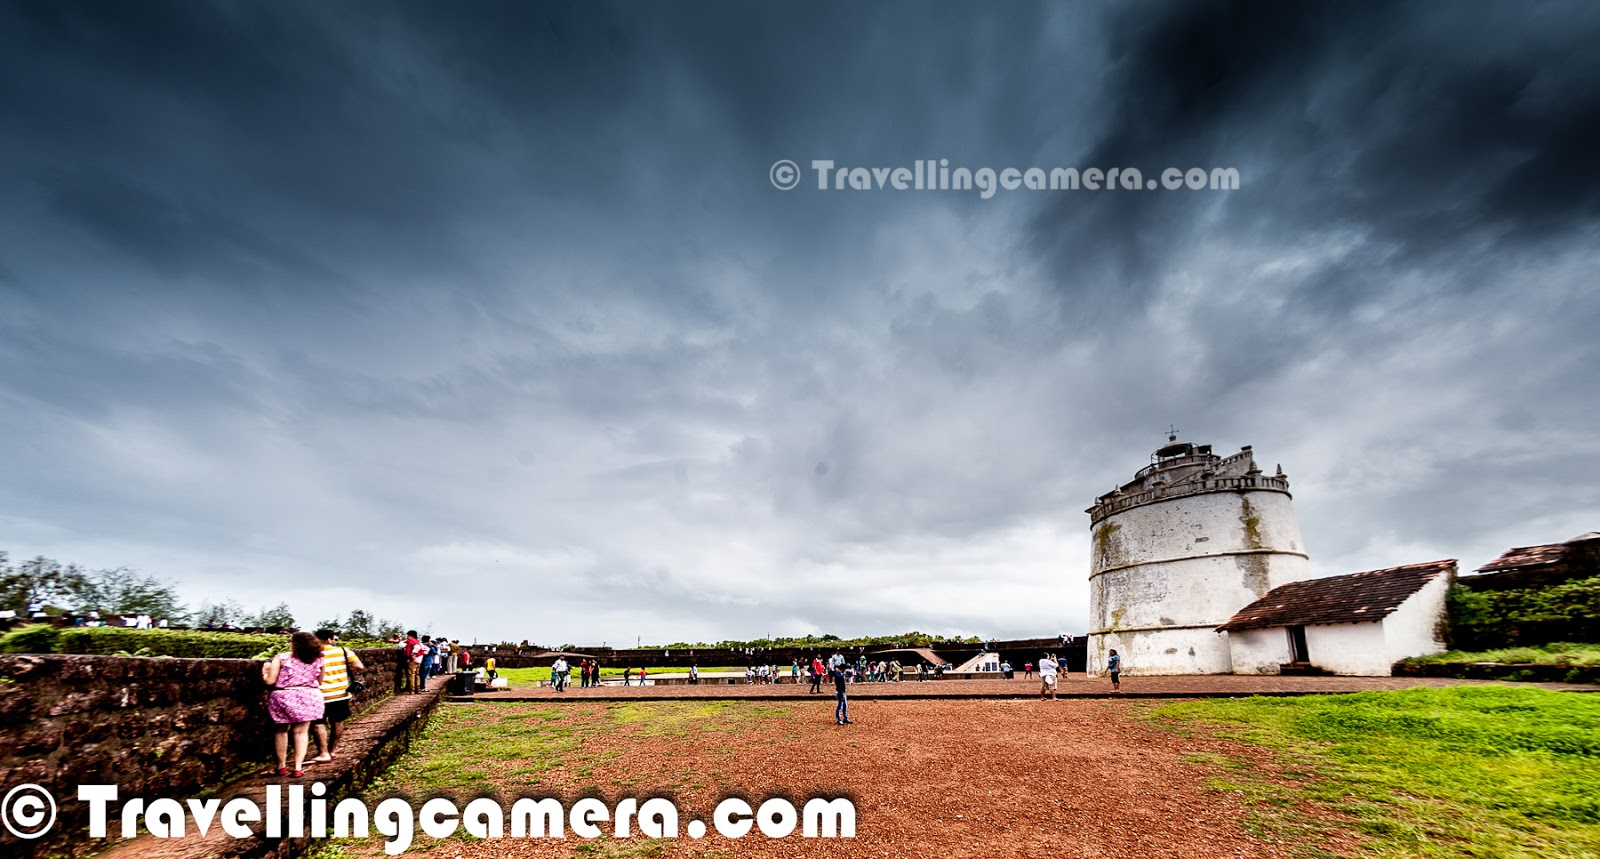 Goa is one of the favorite destinations for travelers & tourists, and many of the smart travelers chose to visit Goa during Monsoons. Do you wonder why? Let's check out this Photo Journey and know 5 main reasons for this.Best Deals - One of the main reasons for choosing Monsoons to visit Goa is TravellingCamera's favorite reason - 'Off Season'. Off Season means a lot of things but the main one is best deals - Cheap flights, great deals in best hotels and lot more. In Monsoons, you can afford 4-5 star property for as much you would pay to a normal hotel during peak season. On top of that, there are plenty of discounts for various things like car/bike hire, restaurants, discotheques etc. Cost for flights just gets down to 1/3rd or even less, Hotels in South Goa are even cheaper & here I am talking about all best properties of Goa - like Zuri White Reort, Radisson, Taj etc.Less crowded - I know different folks interpret it in different ways. I know folks who love to be in Goa when it's crowded. And also seen the same set of folks cribbing about the type of crowd. Without saying much, I would say that it's probably the best time for folks who like to be at peace when they travel. Of course, you get very good access to beaches and the sea.  Good weather - What comes to your mind, when we say Monsoons in Goa? Don't spend your energies in imagining Goa in monsoons :). It's beautiful with soothing breeze folioing you all around. Fields and beaches are lush green, which makes the place more beautiful. Cleaner beaches - Goan beaches are much cleaner than usual, because of some obvious reasons. This makes your exploration 10 times better. After all, you visit Goa for these beautiful beaches and what can better if you see them like what you expect.Goan Monsoons - Goan Monsoons are very special and offers some brilliant experiences. The rains are very light and you feel like getting drenched in Goan drizzles. These rains encourage you to drive in hills around Goa which look beautiful and if you are lucky, you may come across some beautiful waterfalls which are usually missed by folks visiting Goa in peak season. All such experiences make Goan Monsoons special for you. If you have missed planning Goa trip during this monsoon, don't miss it next year and have fun with your loved ones !!!